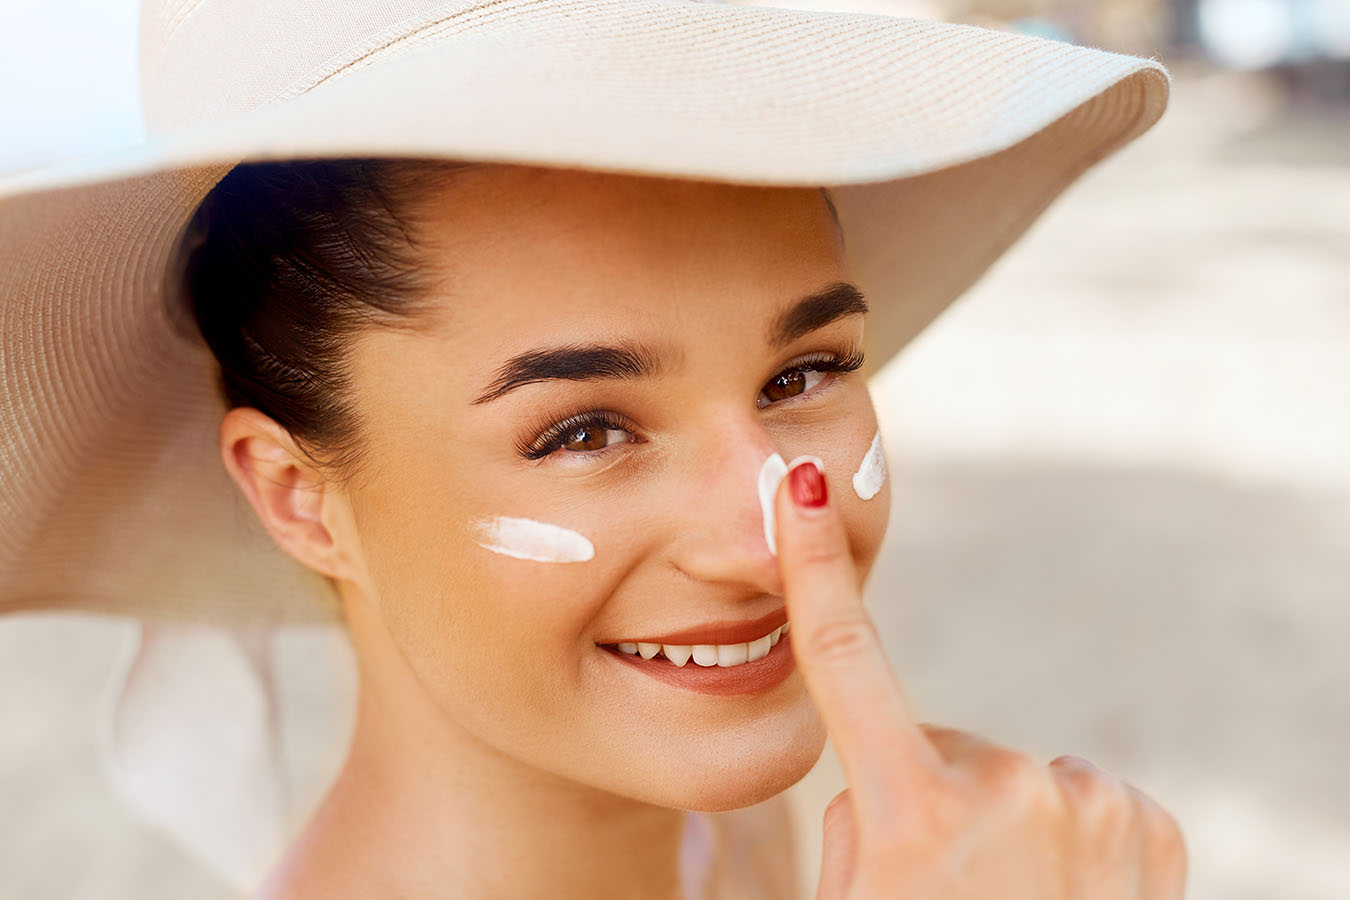 Young woman with a beach hat on is smiling and applying sunscreen on her face.